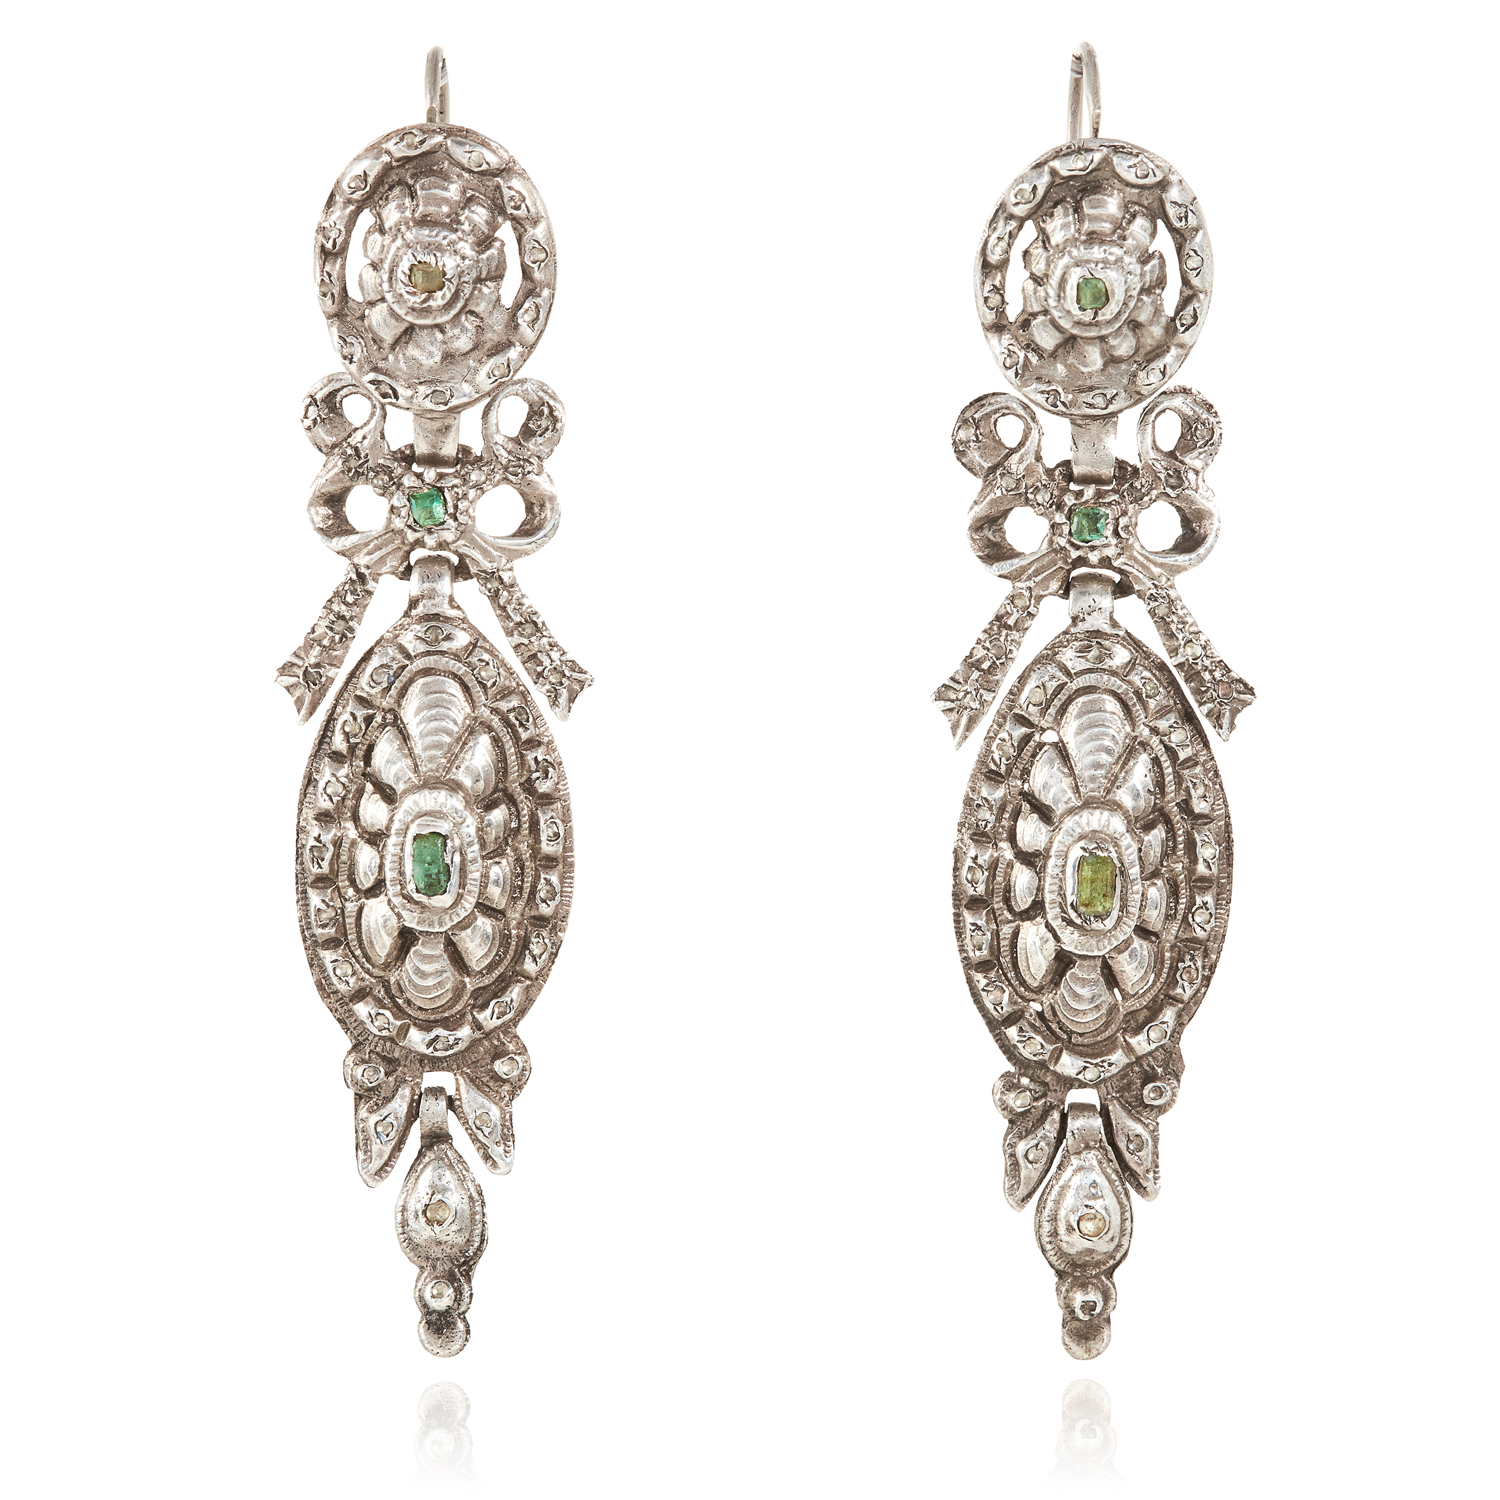 Los 50 - A PAIR OF SPANISH EMERALD AND DIAMOND EARRINGS, CATALAN 17TH/18TH CENTURY in silver, the articulated